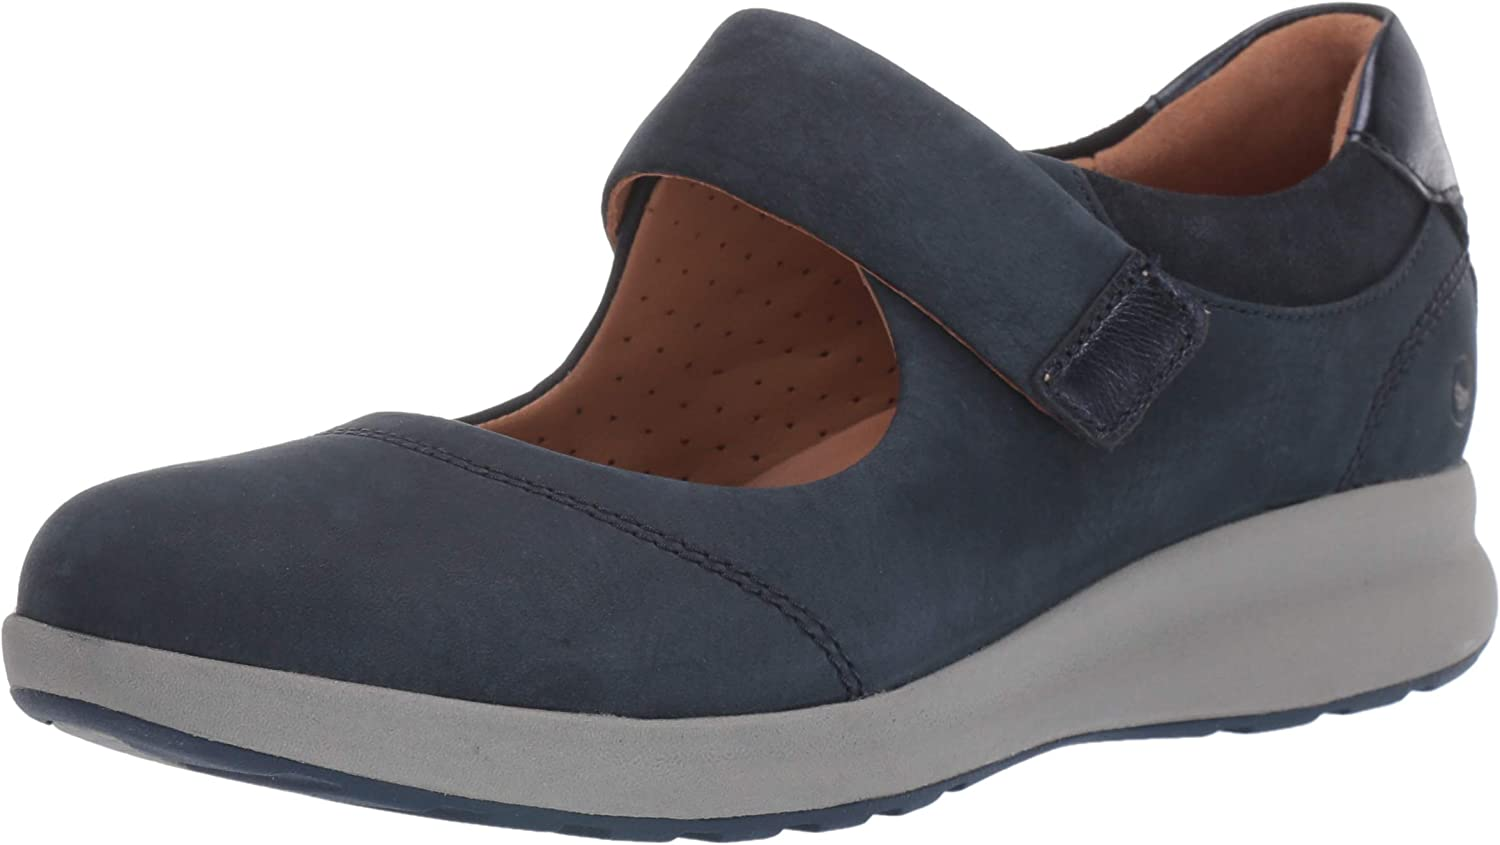 Clarks Women's Un Adorn Mary Flat National uniform Chicago Mall free shipping Strap Jane